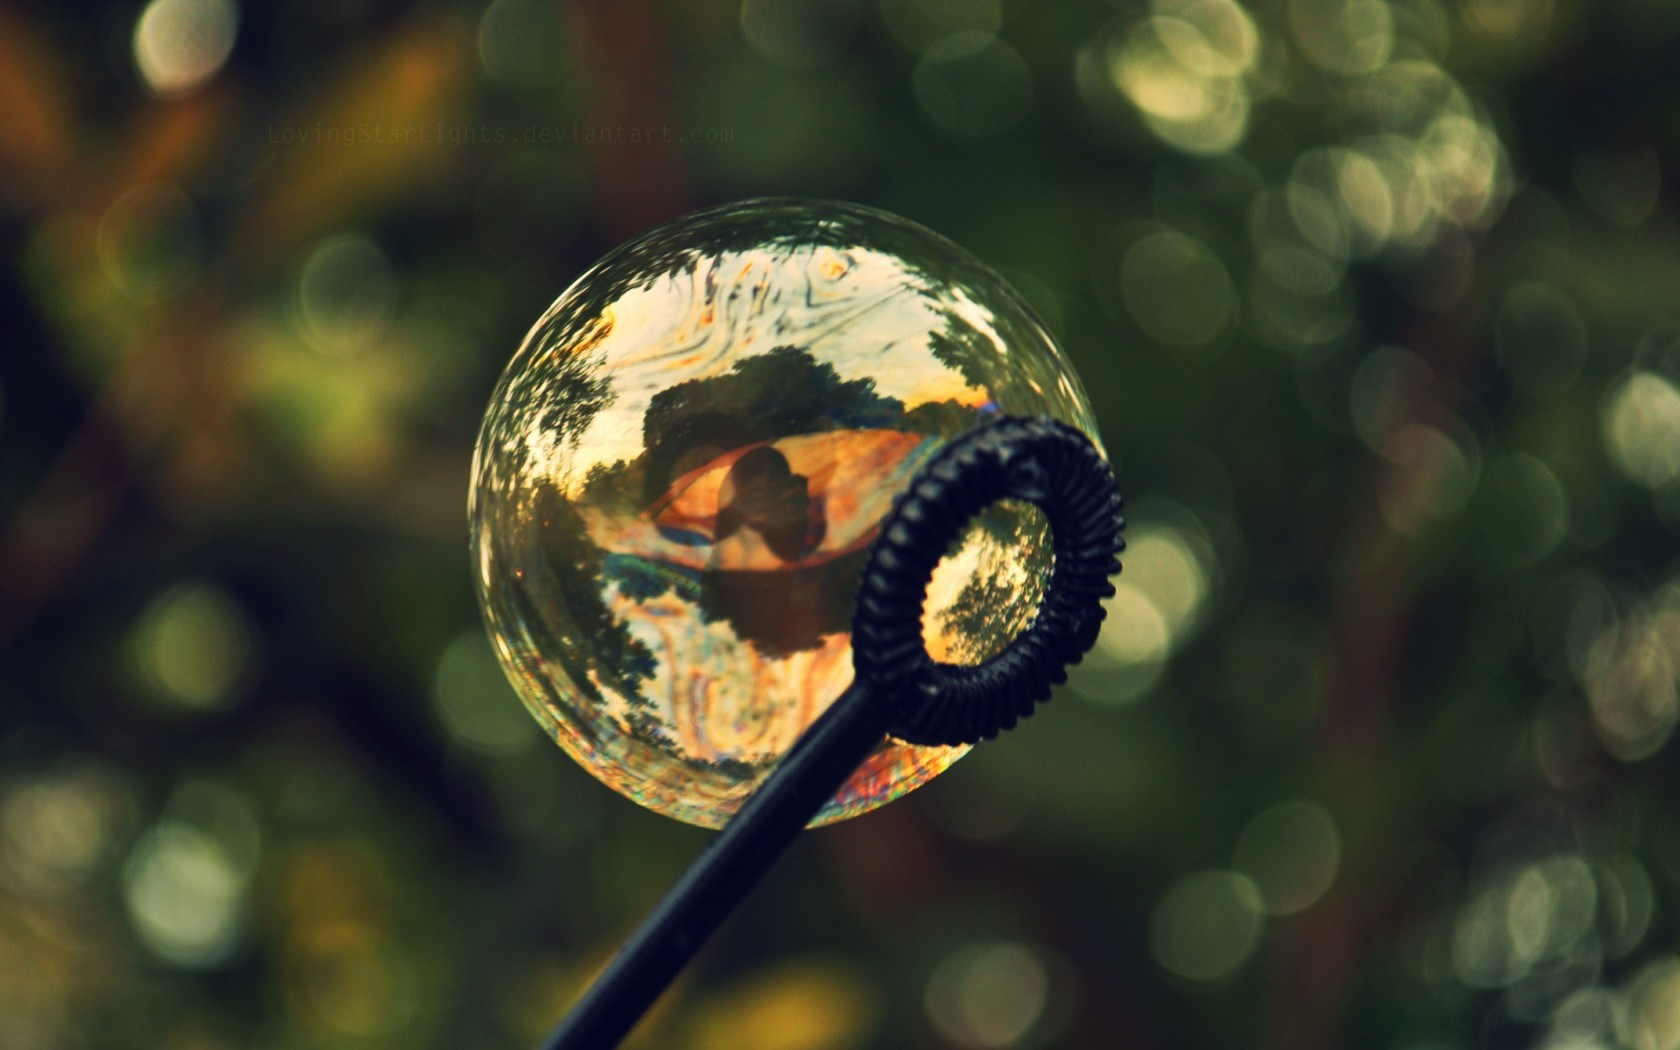 soap-bubble-hd-wallpaper